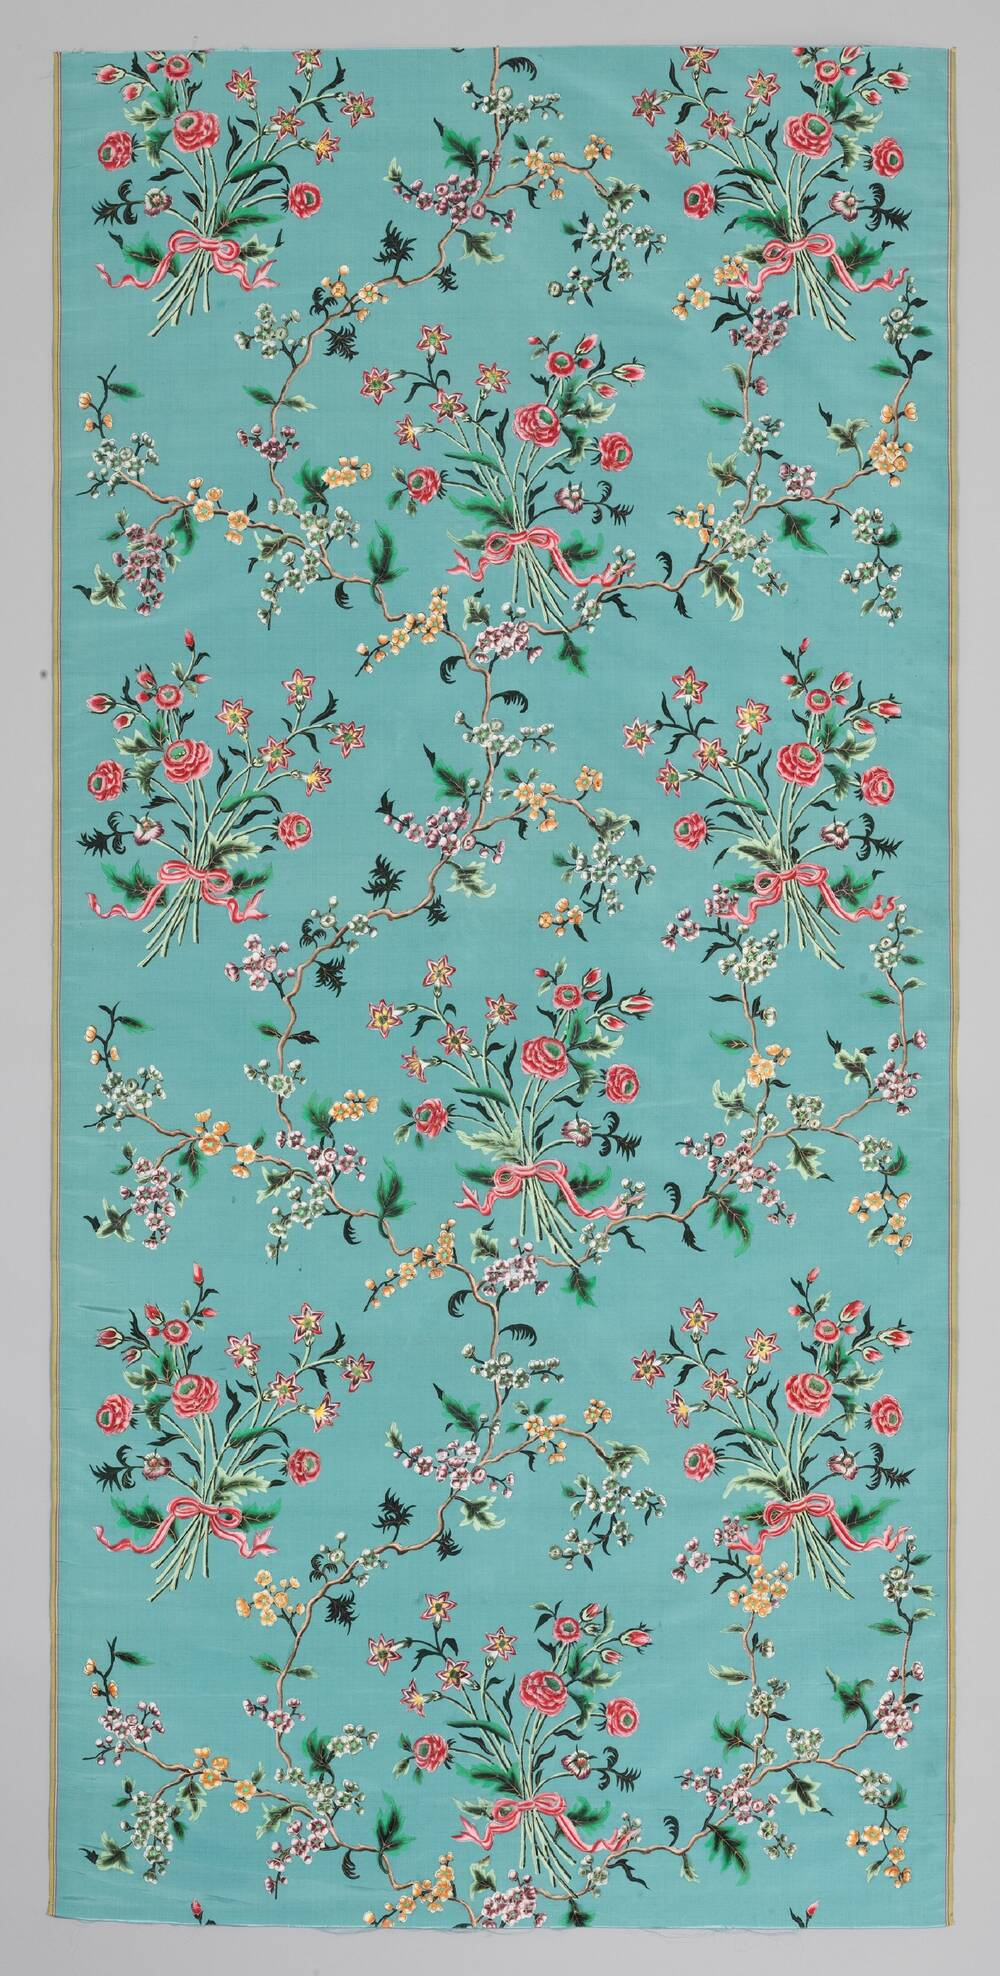 A long vertical panel of turquoise silk with a painted floral design is displayed against a plain grey background.